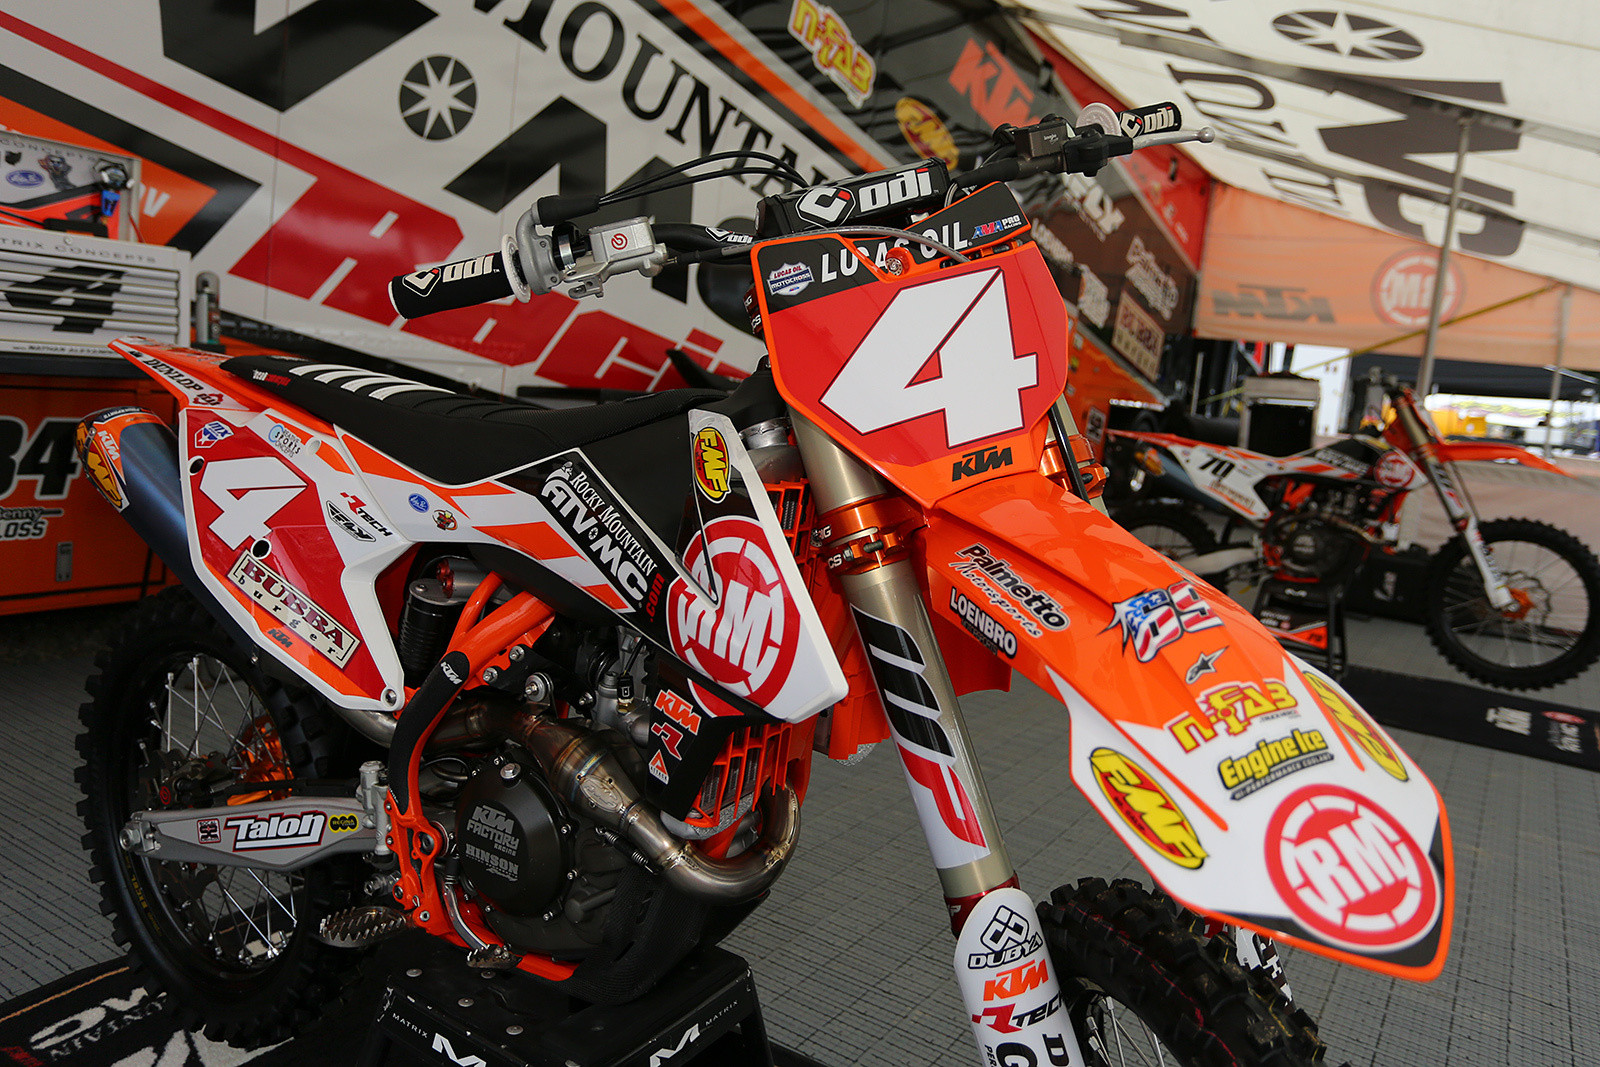 Blake Baggett's bike was looking pretty sharp with the red plates on it. They'll be on it for at least another week, as he was still on top after leaving Muddy Creek.